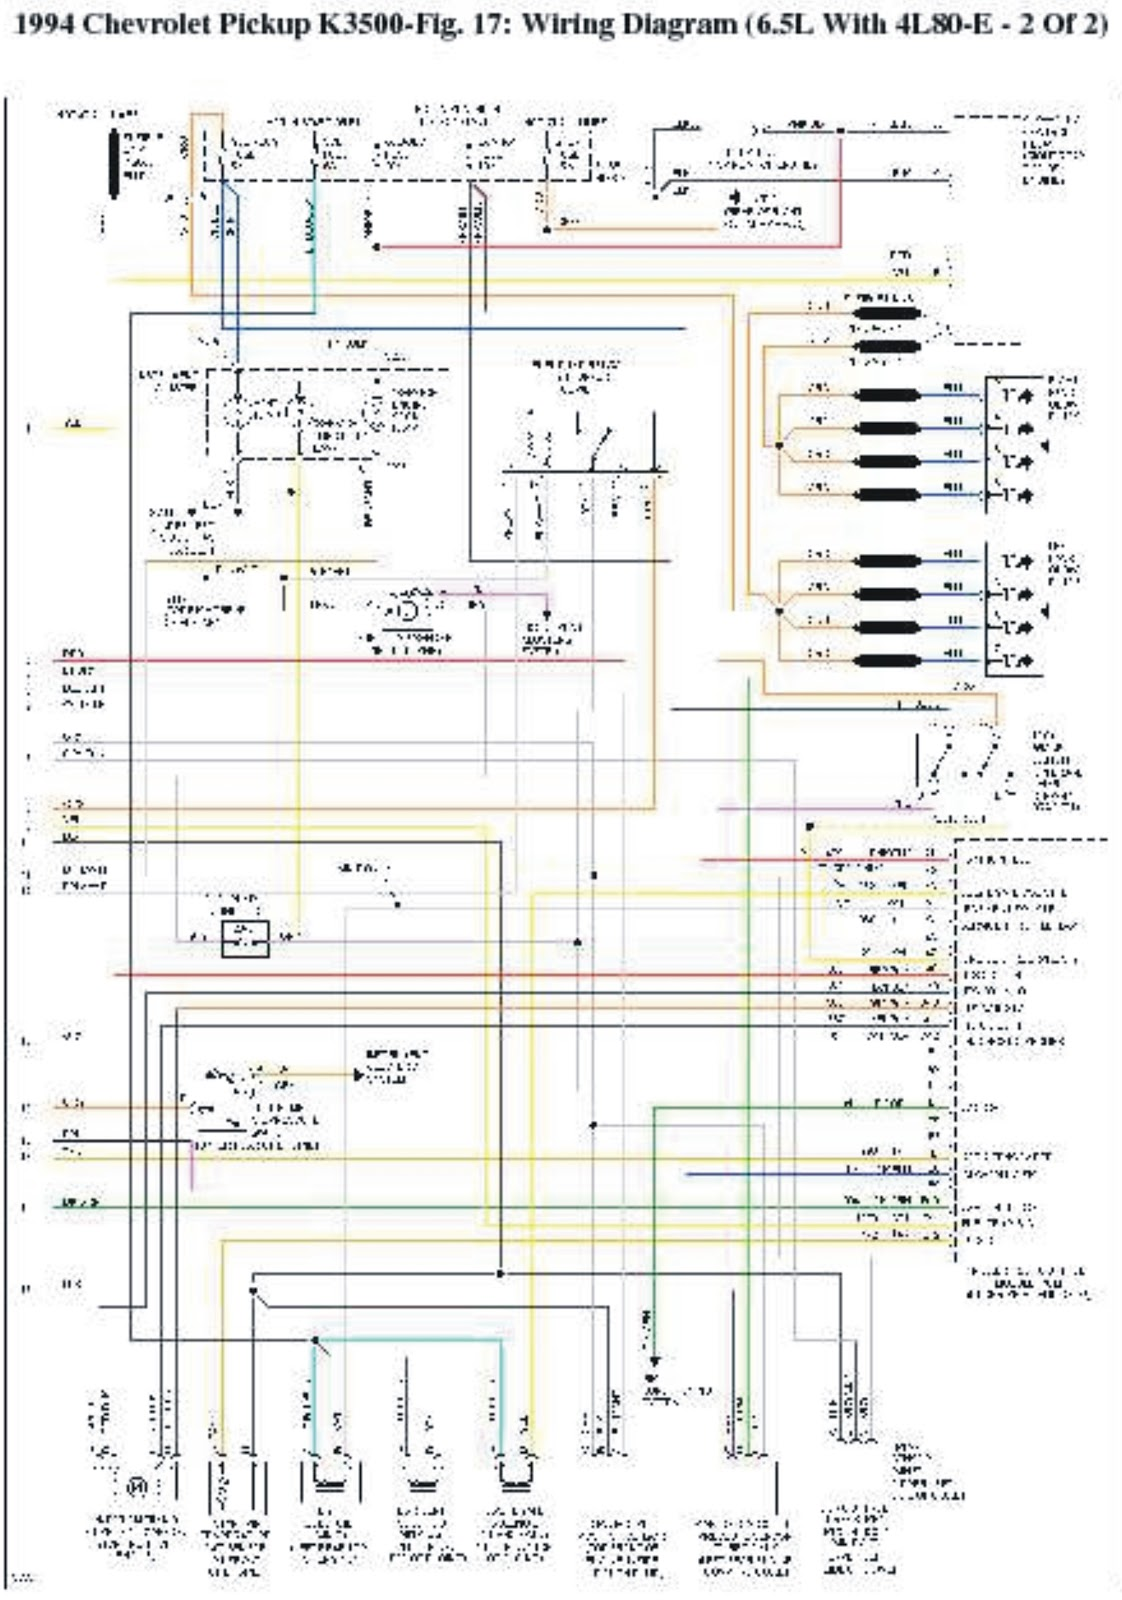 1993 Chevy K3500 Wiring Diagram Wiring Diagrams Panel Panel Chatteriedelavalleedufelin Fr